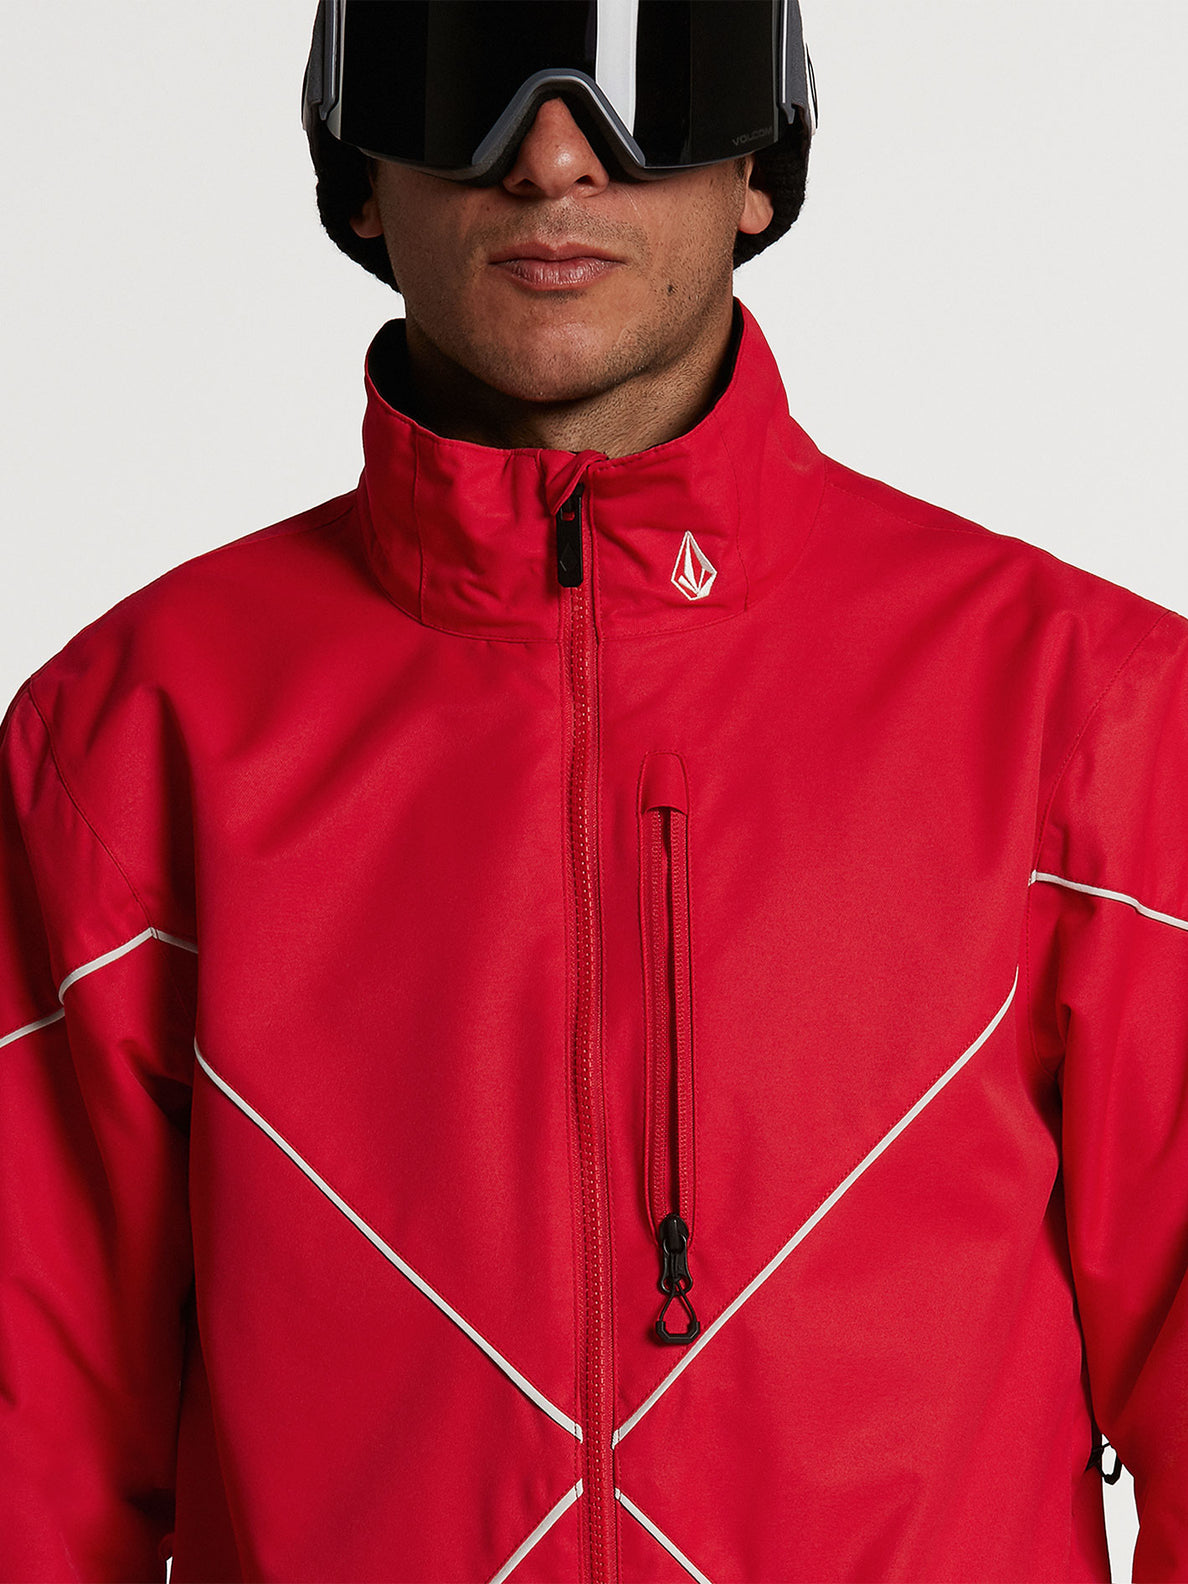 Mens No Hood X Jacket - Red (G0652114_RED) [04]